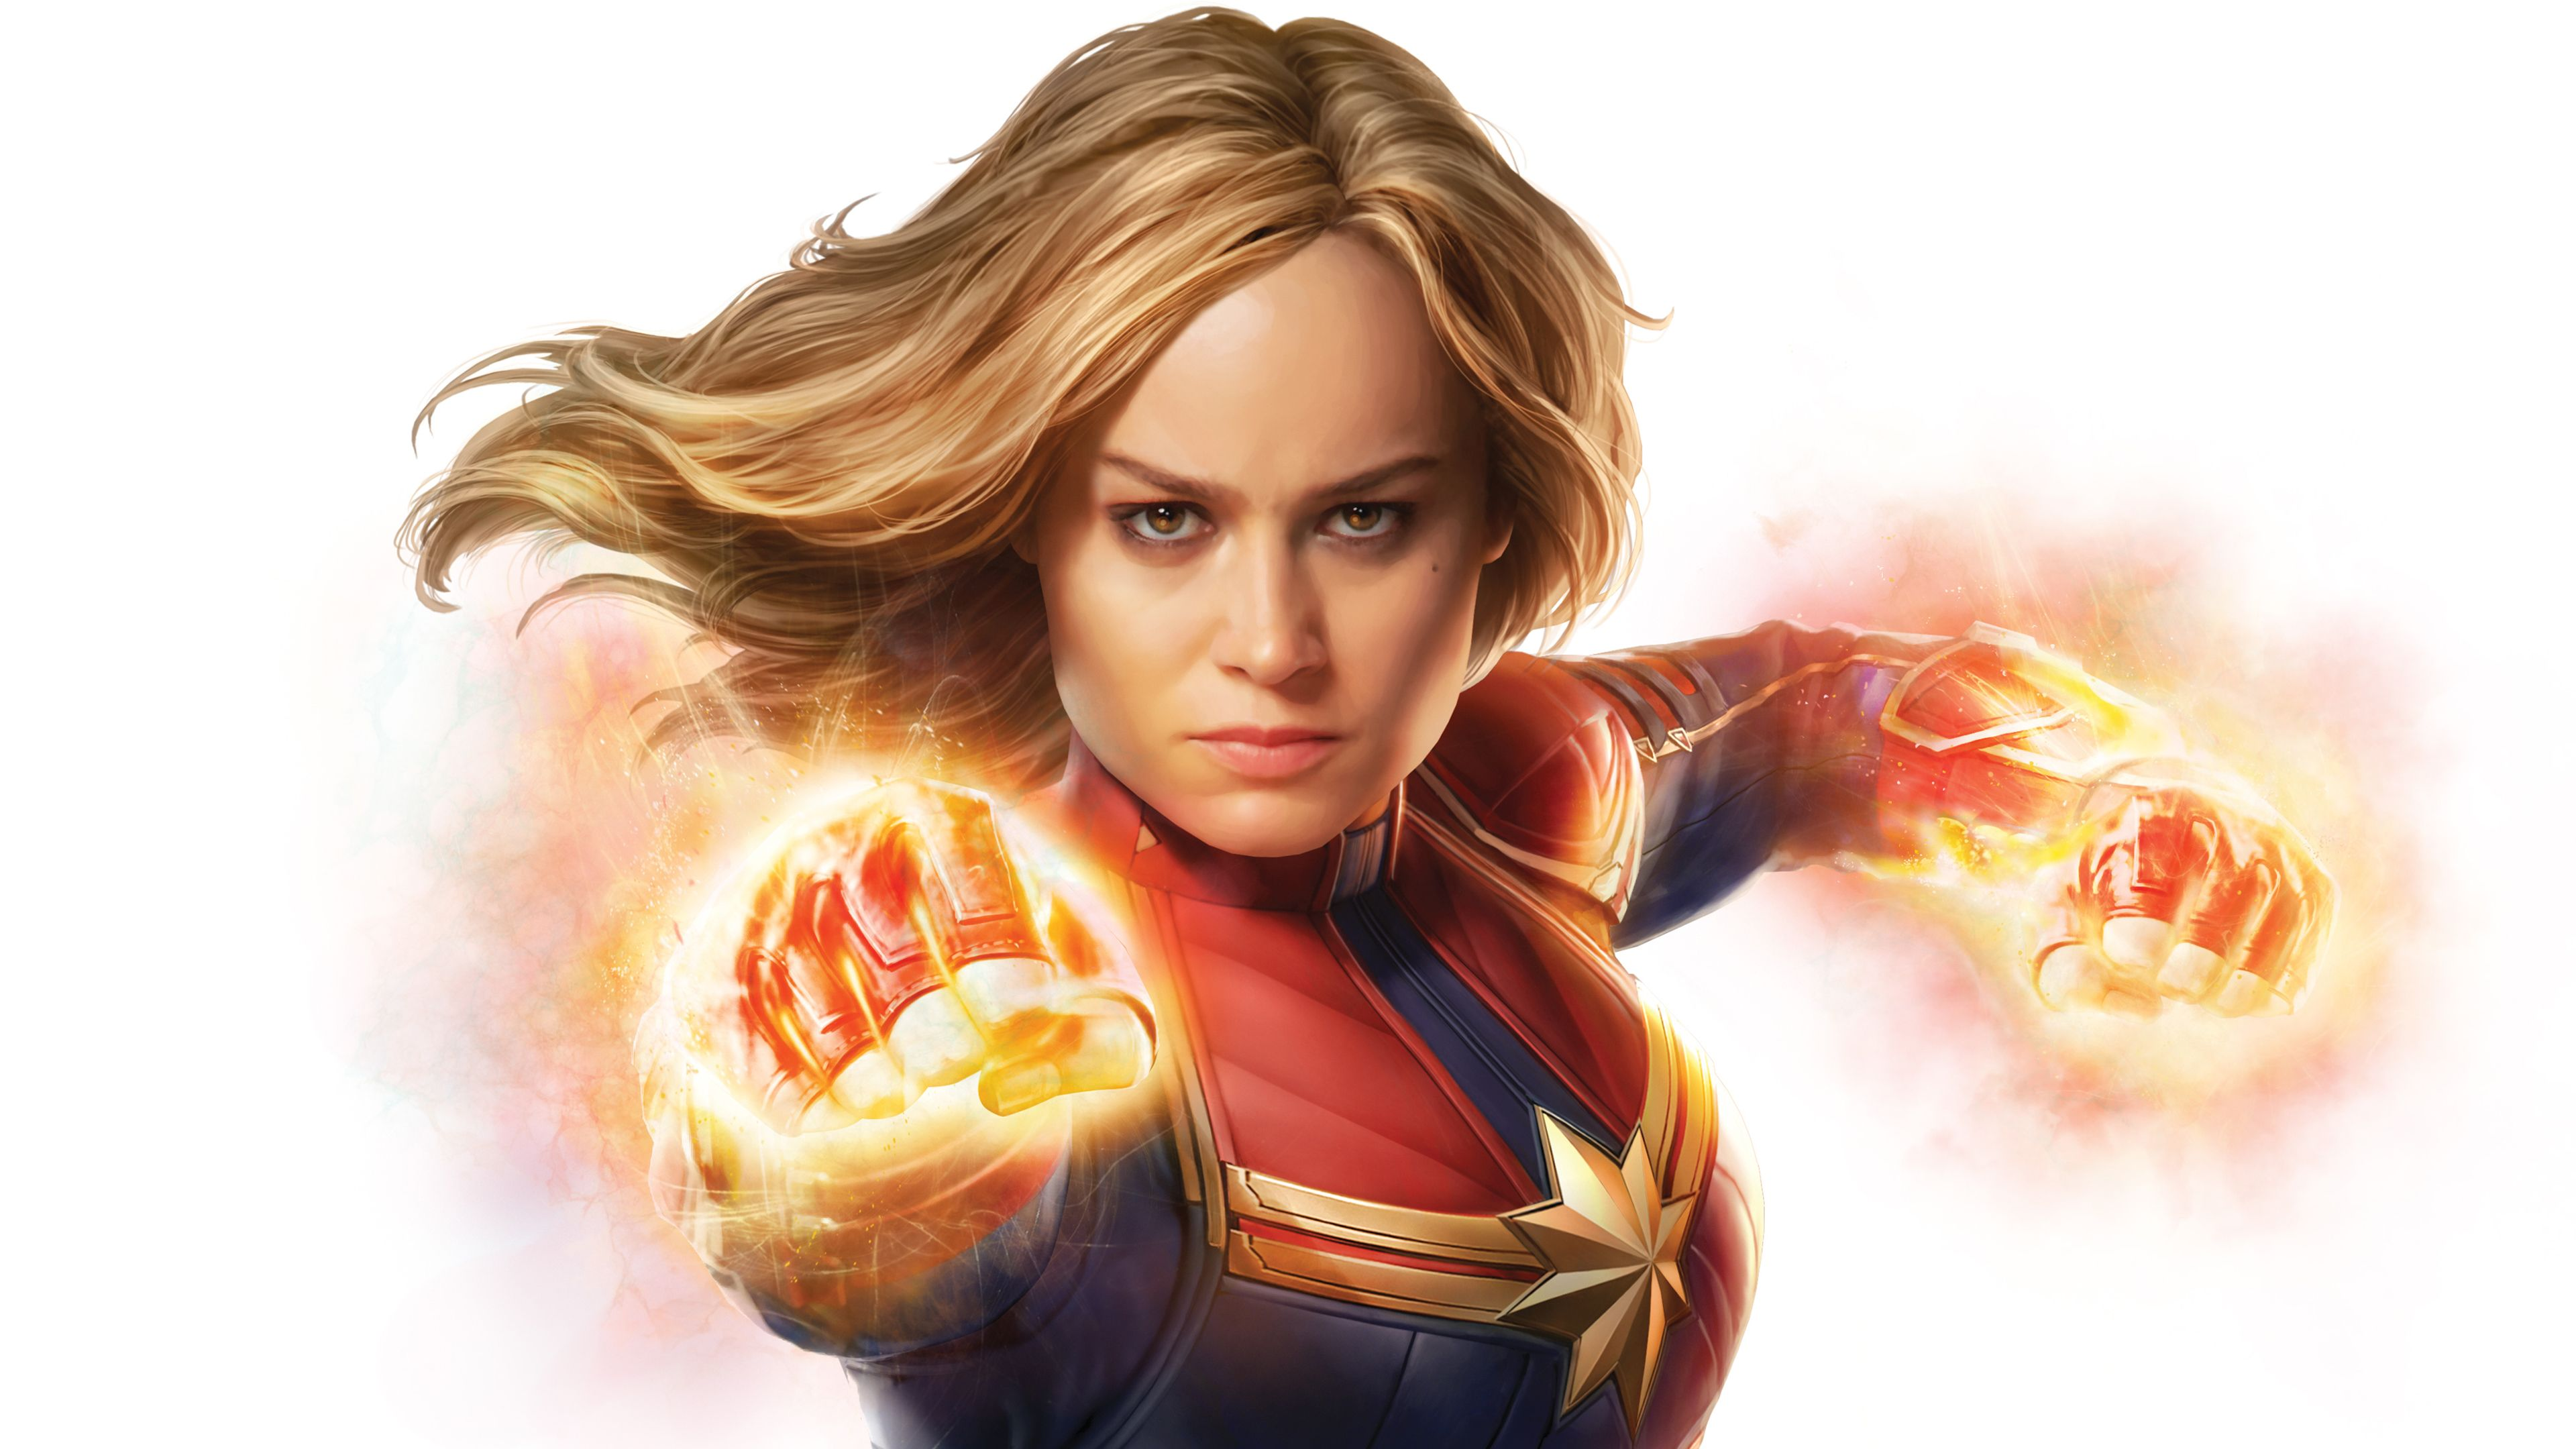 3840x2160 Brie Larson as Captain Marvel 4K Wallpapers | HD Wallpapers ...